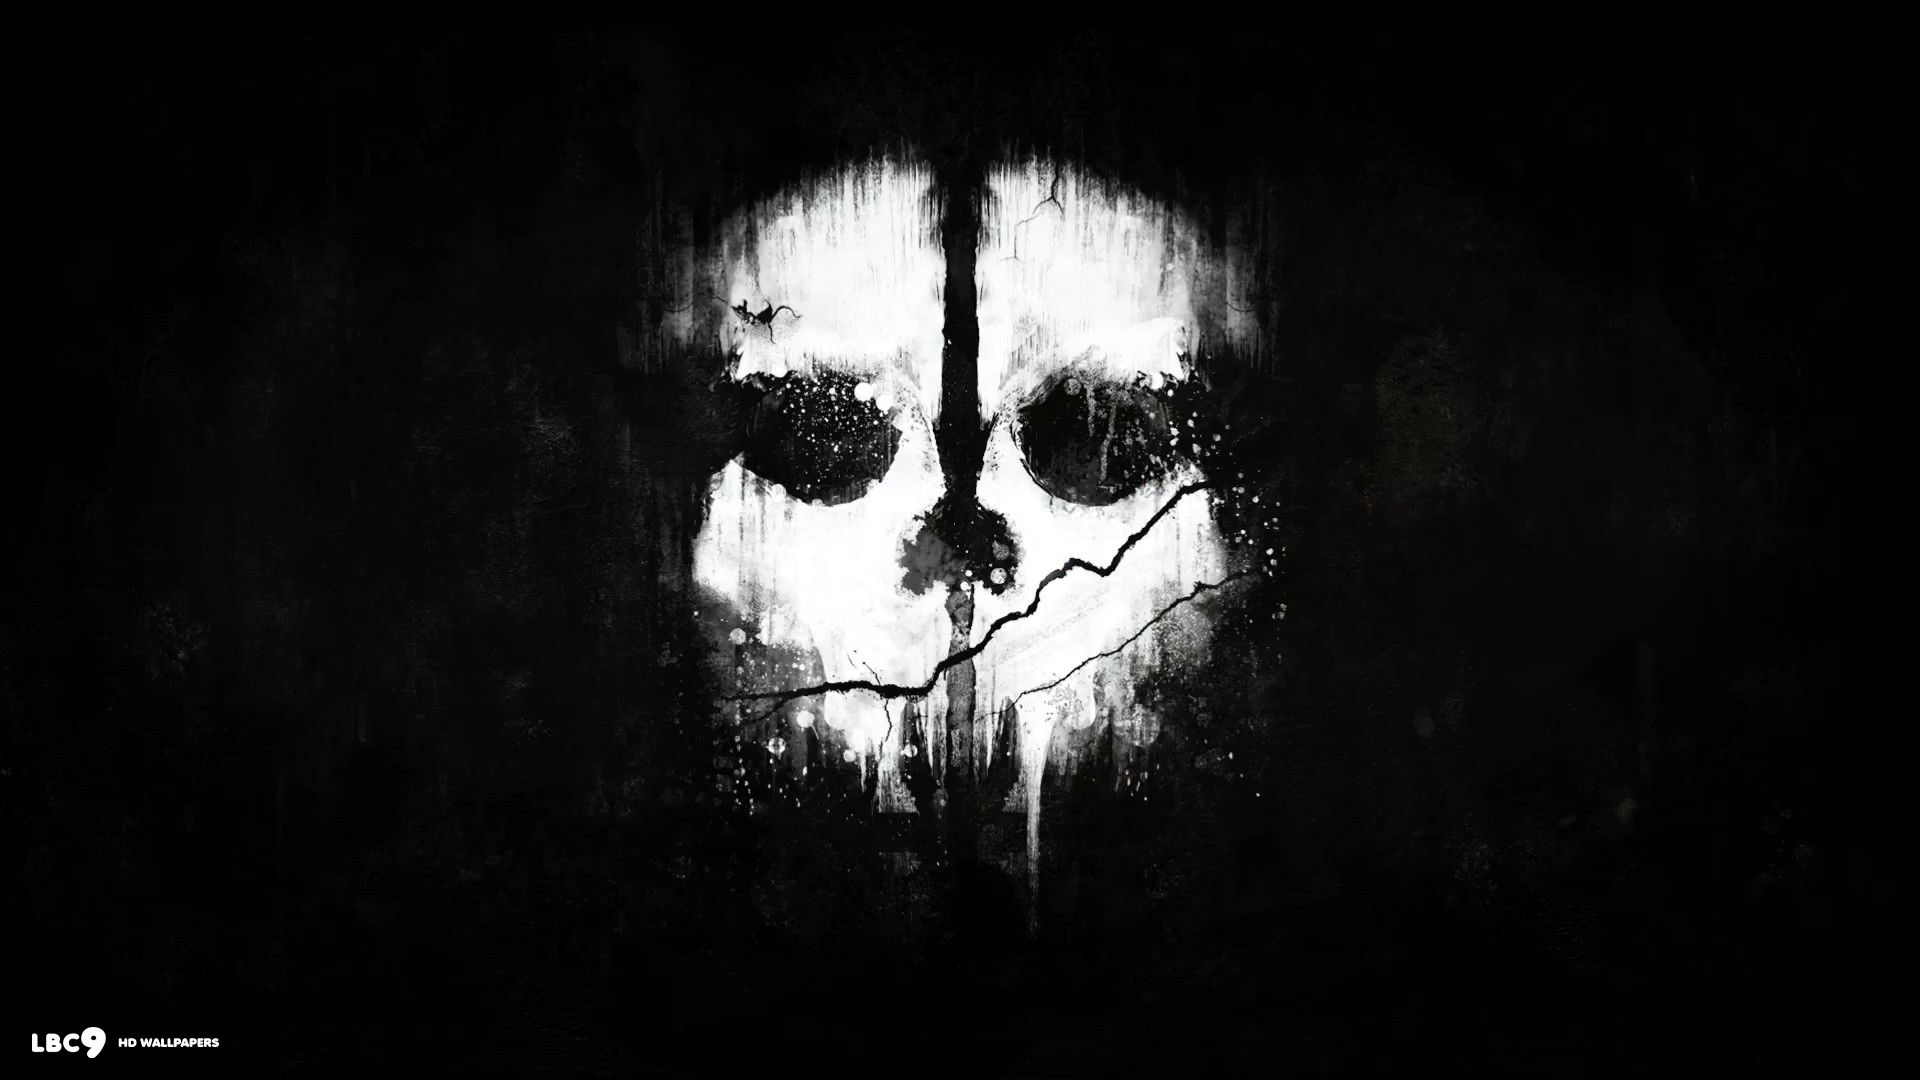 call of duty ghosts wallpaper 3/5 | first person shooter games hd